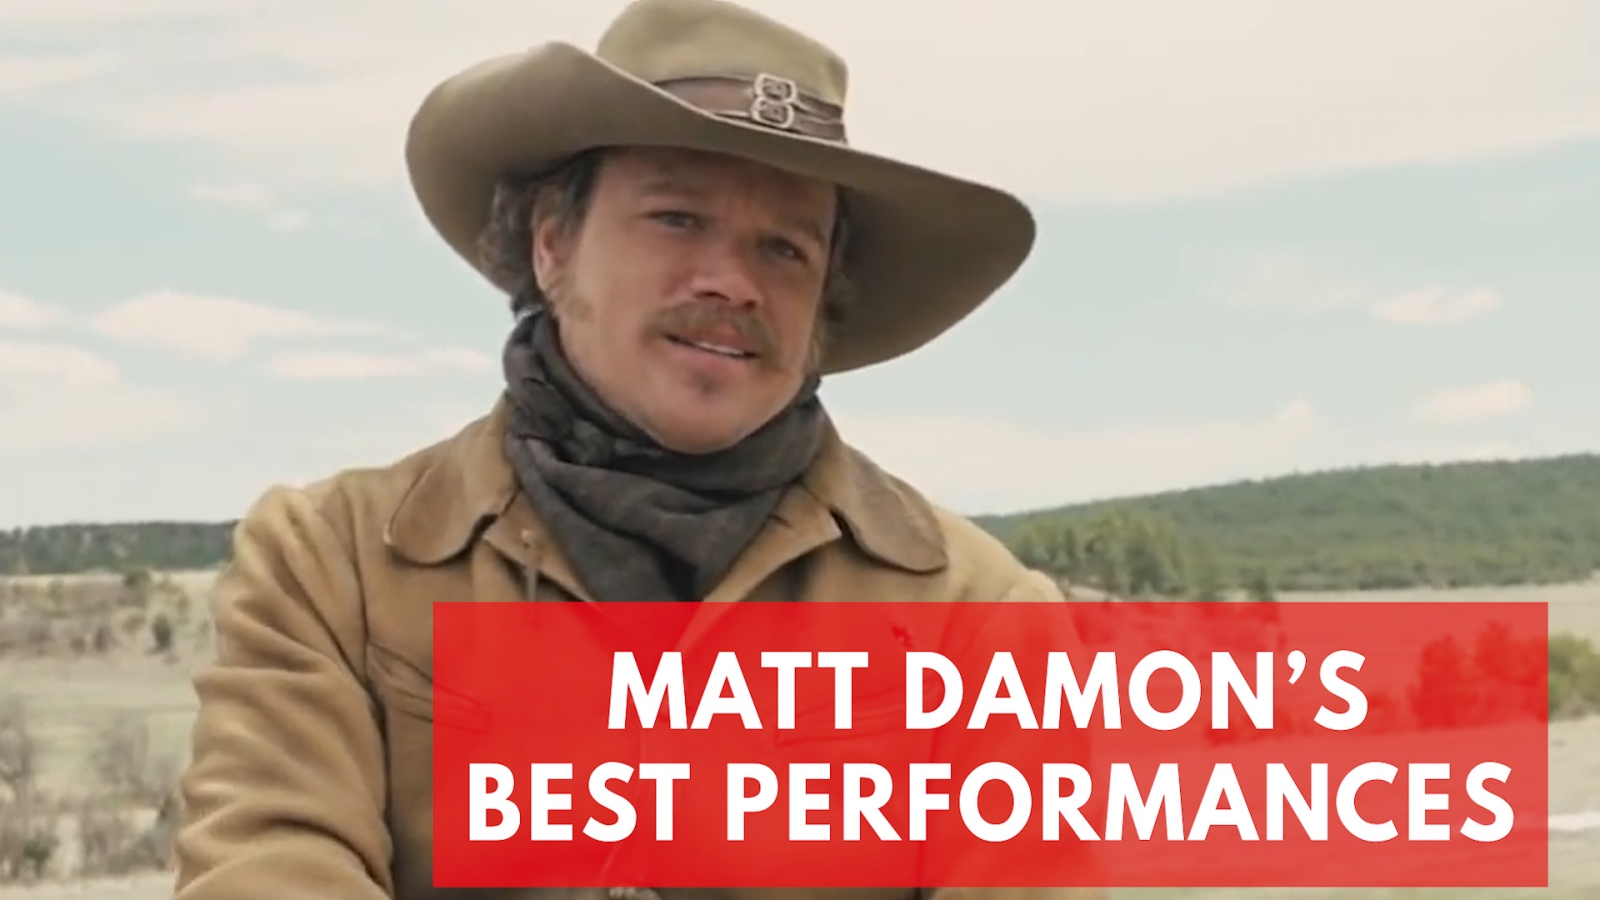 Matt Damon's best performances